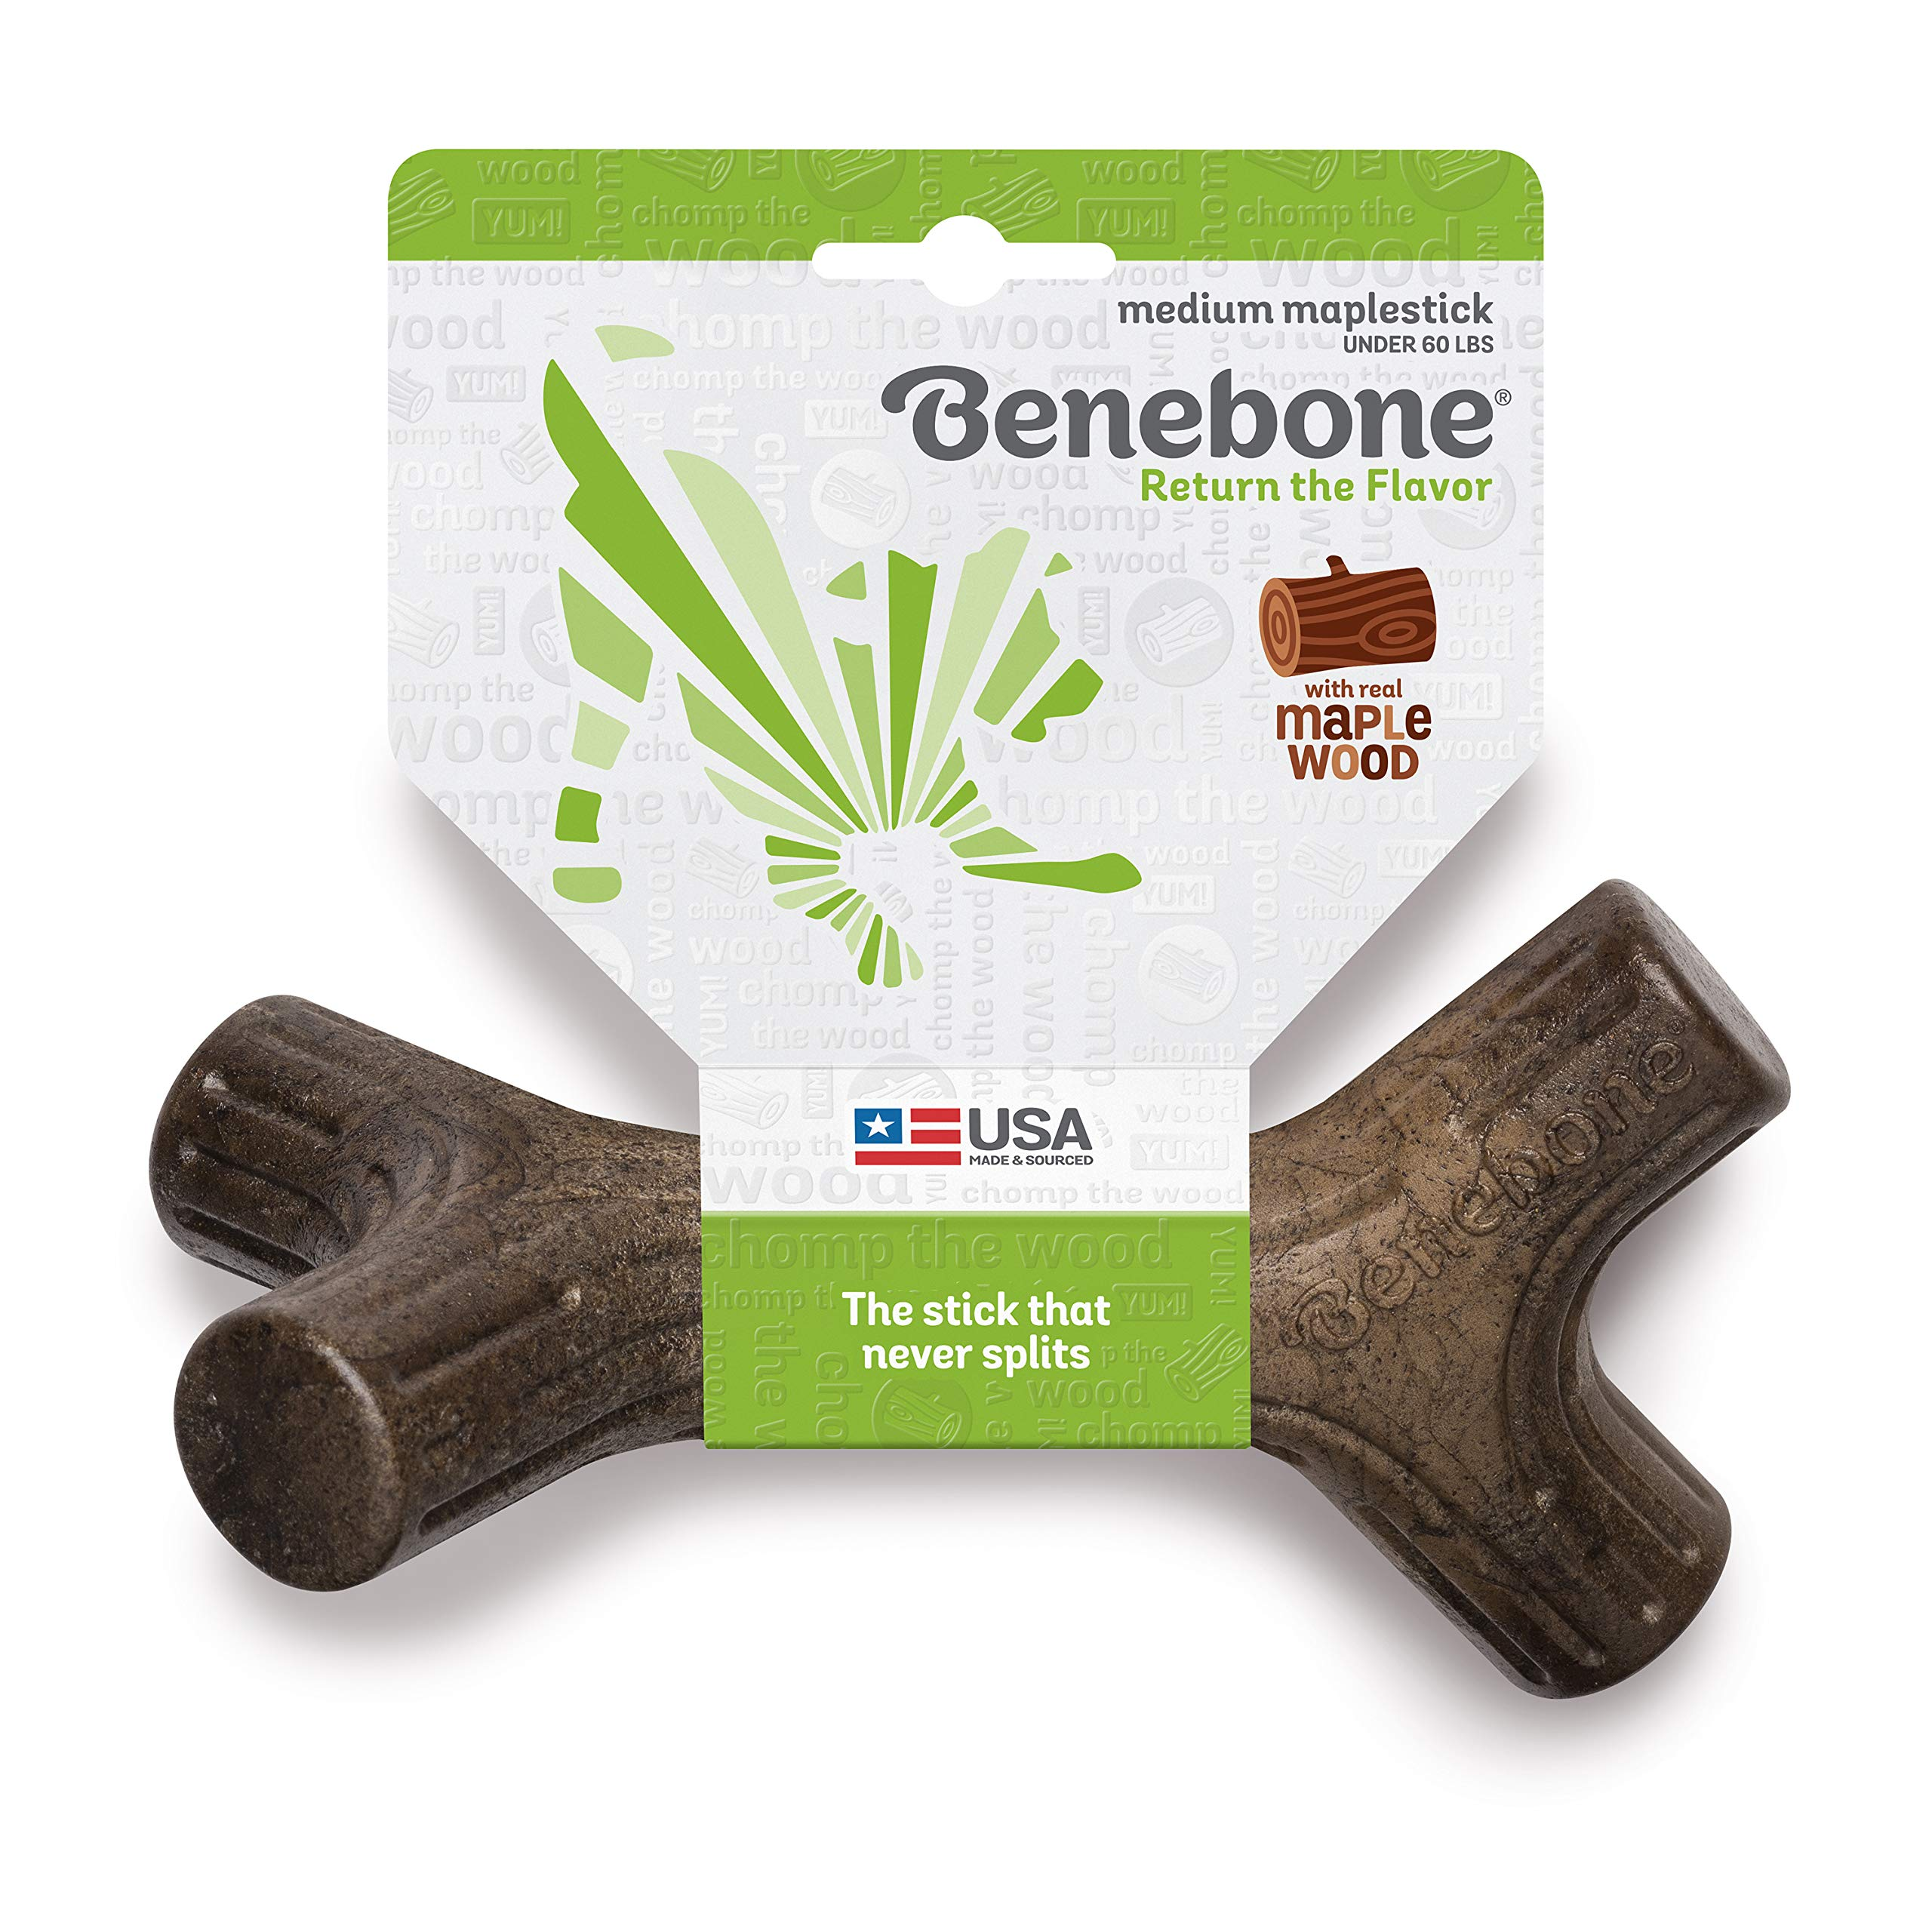 Benebone Maplestick Durable Dog Stick Chew Toy, Made in USA, REAL Maple Wood Flavor, Medium by Benebone